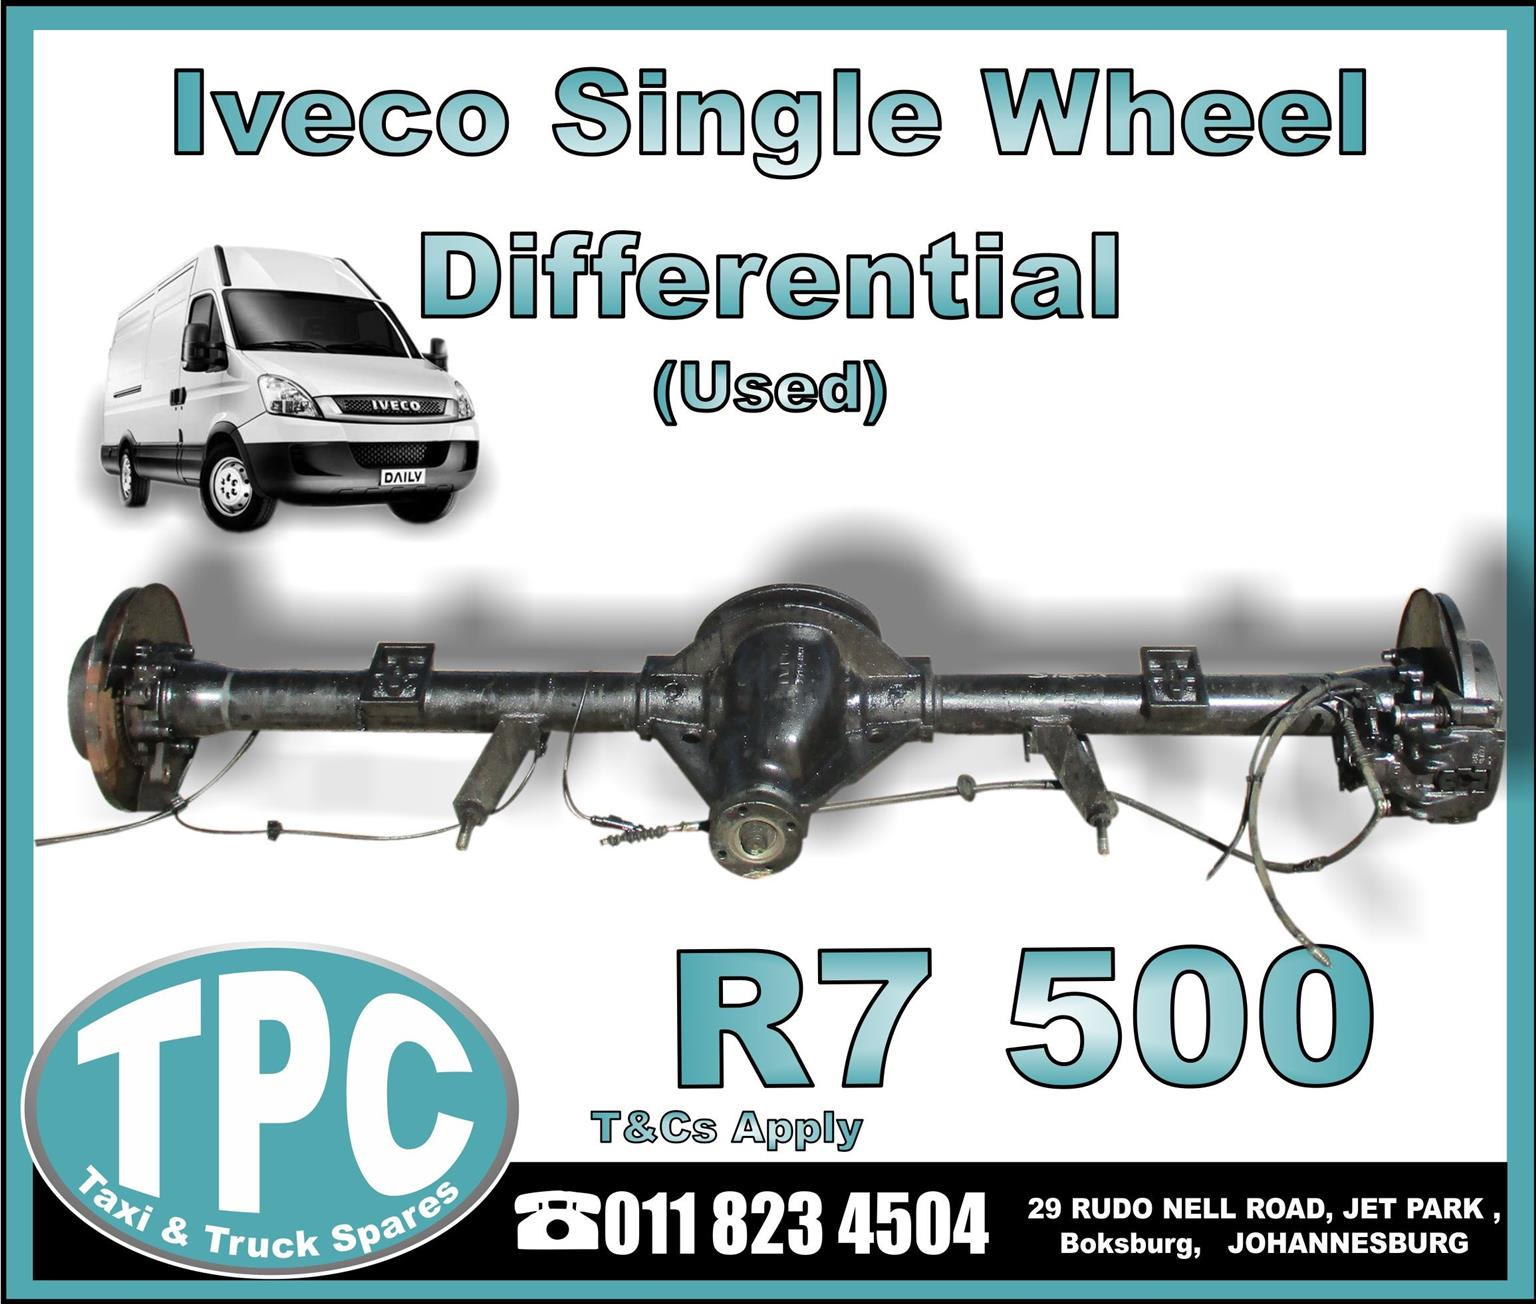 Iveco Single Wheel Differential - Used - New And Used Quality Replacement Taxi Spare Parts - TPC.